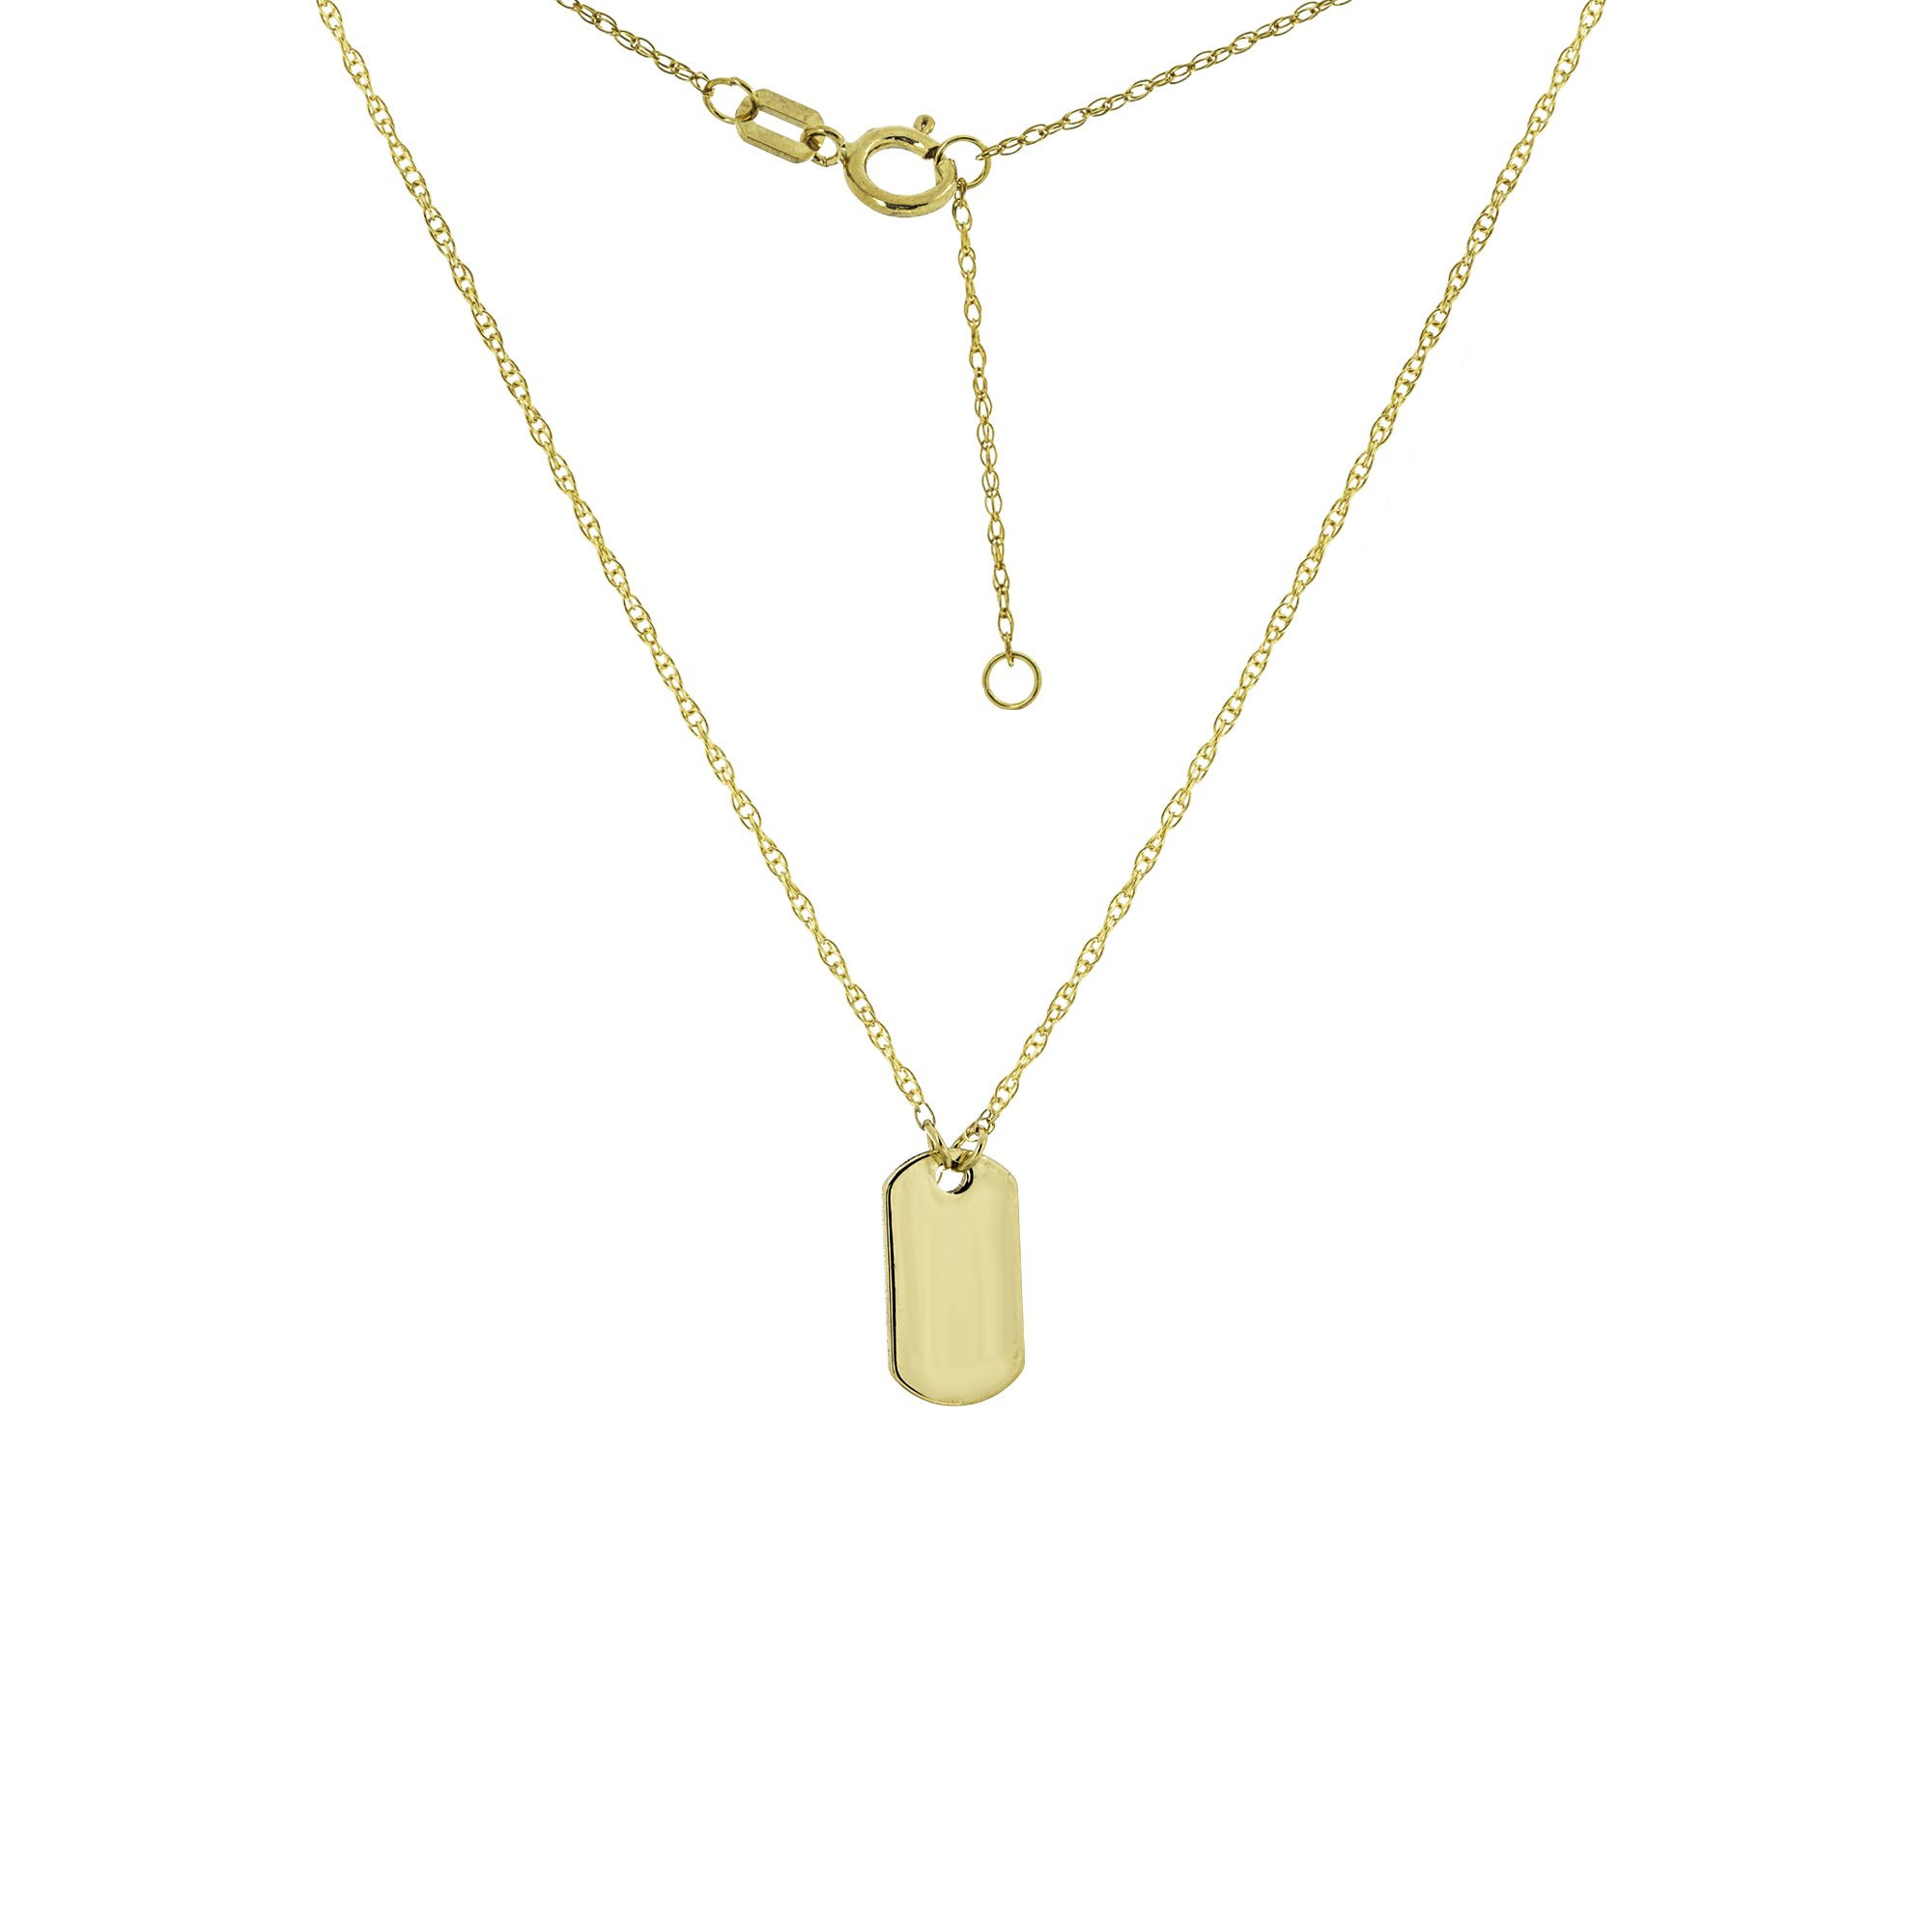 DOG TAG, 14KT GOLD DOG TAG NECKLACE 18'' INCHES